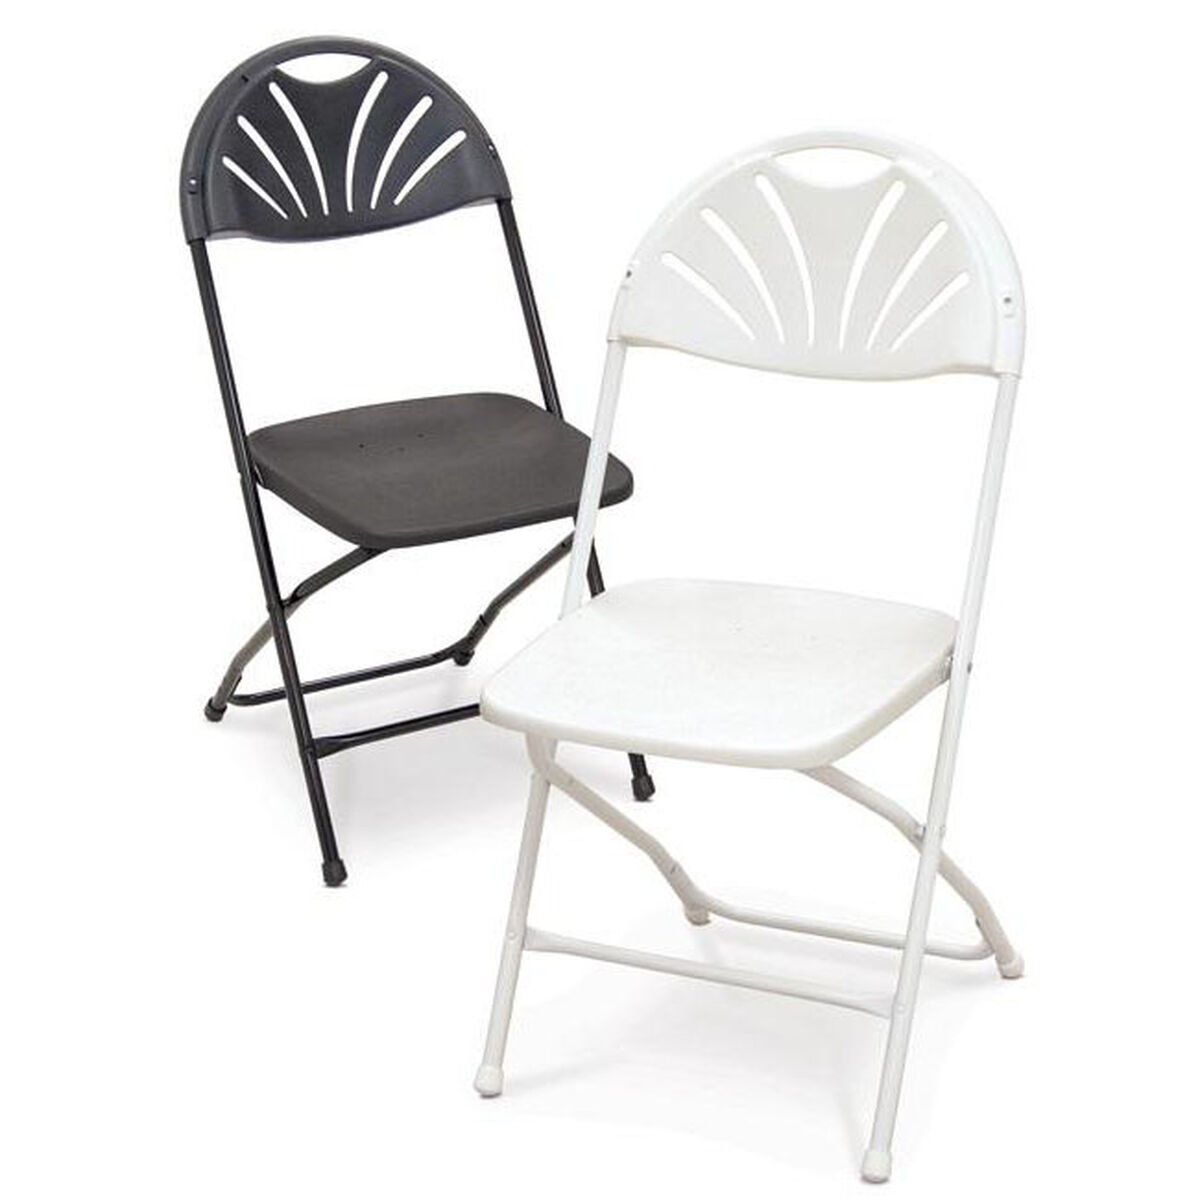 Strange Series 5 Steel Frame Stackable Fanback Folding Chair With Polypropylene Seat And Back White Uwap Interior Chair Design Uwaporg